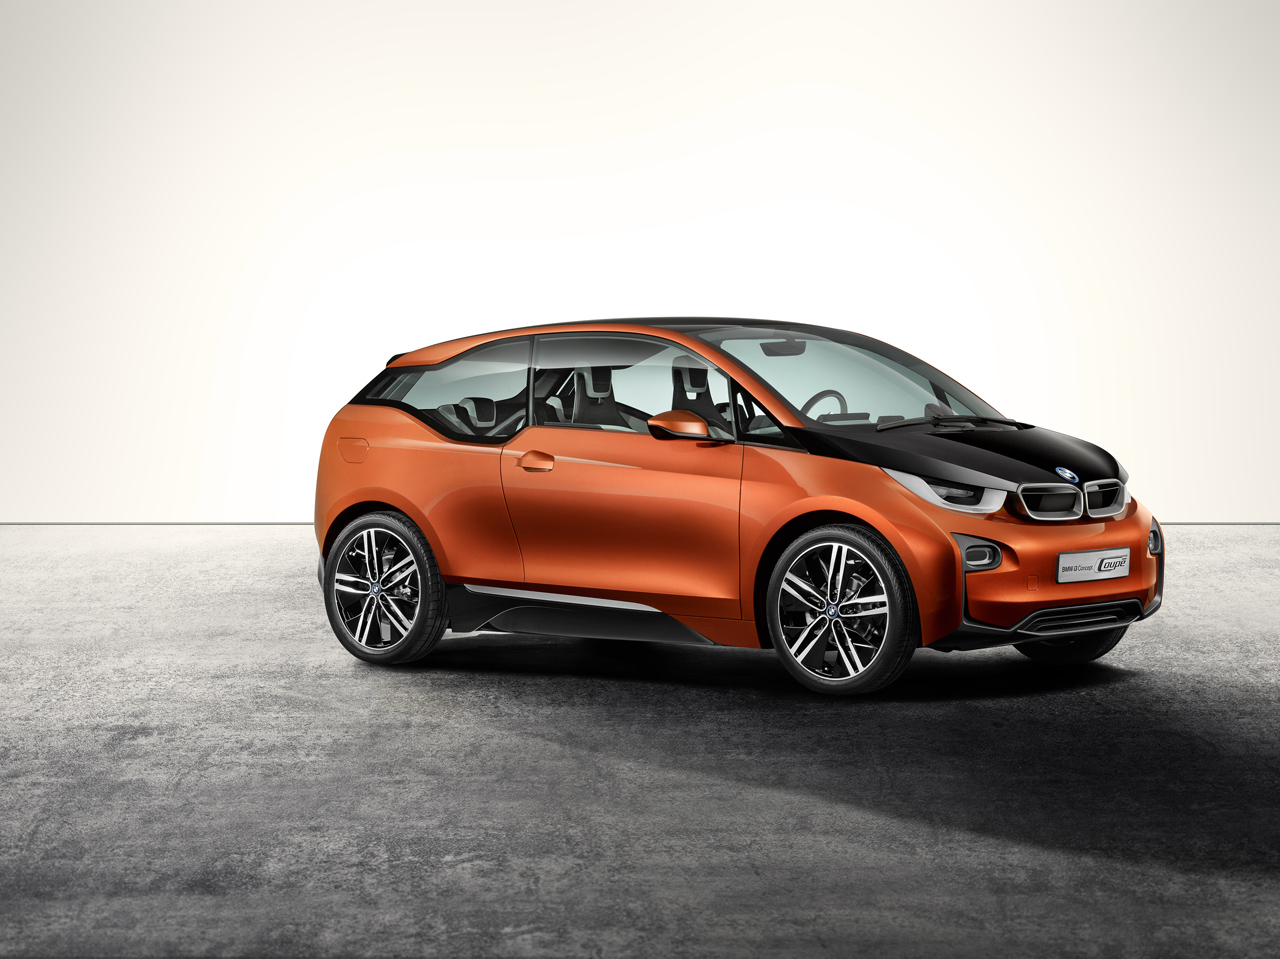 The BMW i3 Coupe concept